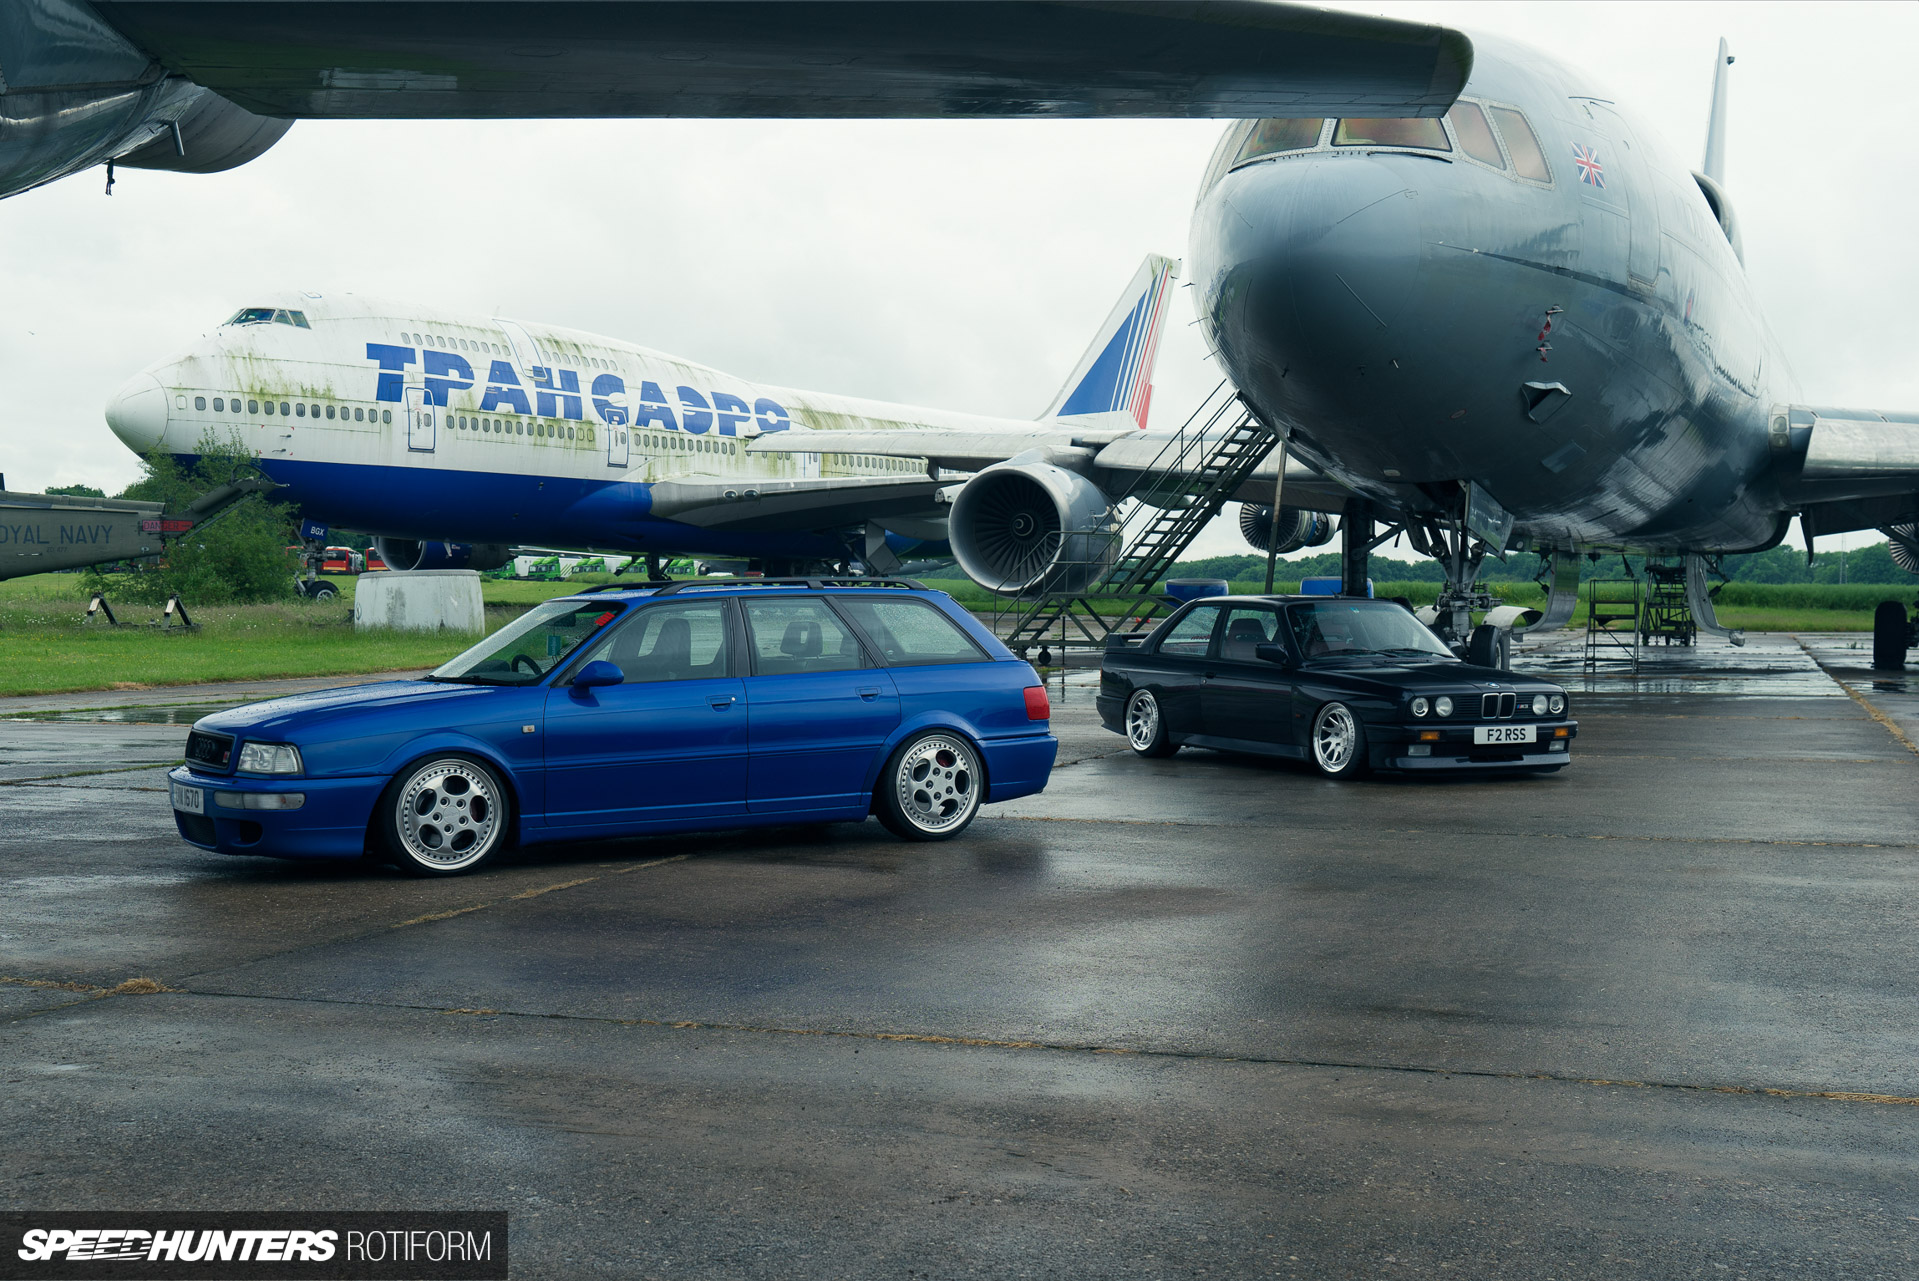 90 S Legends Bmw E30 M3 Or Audi Rs2 Speedhunters